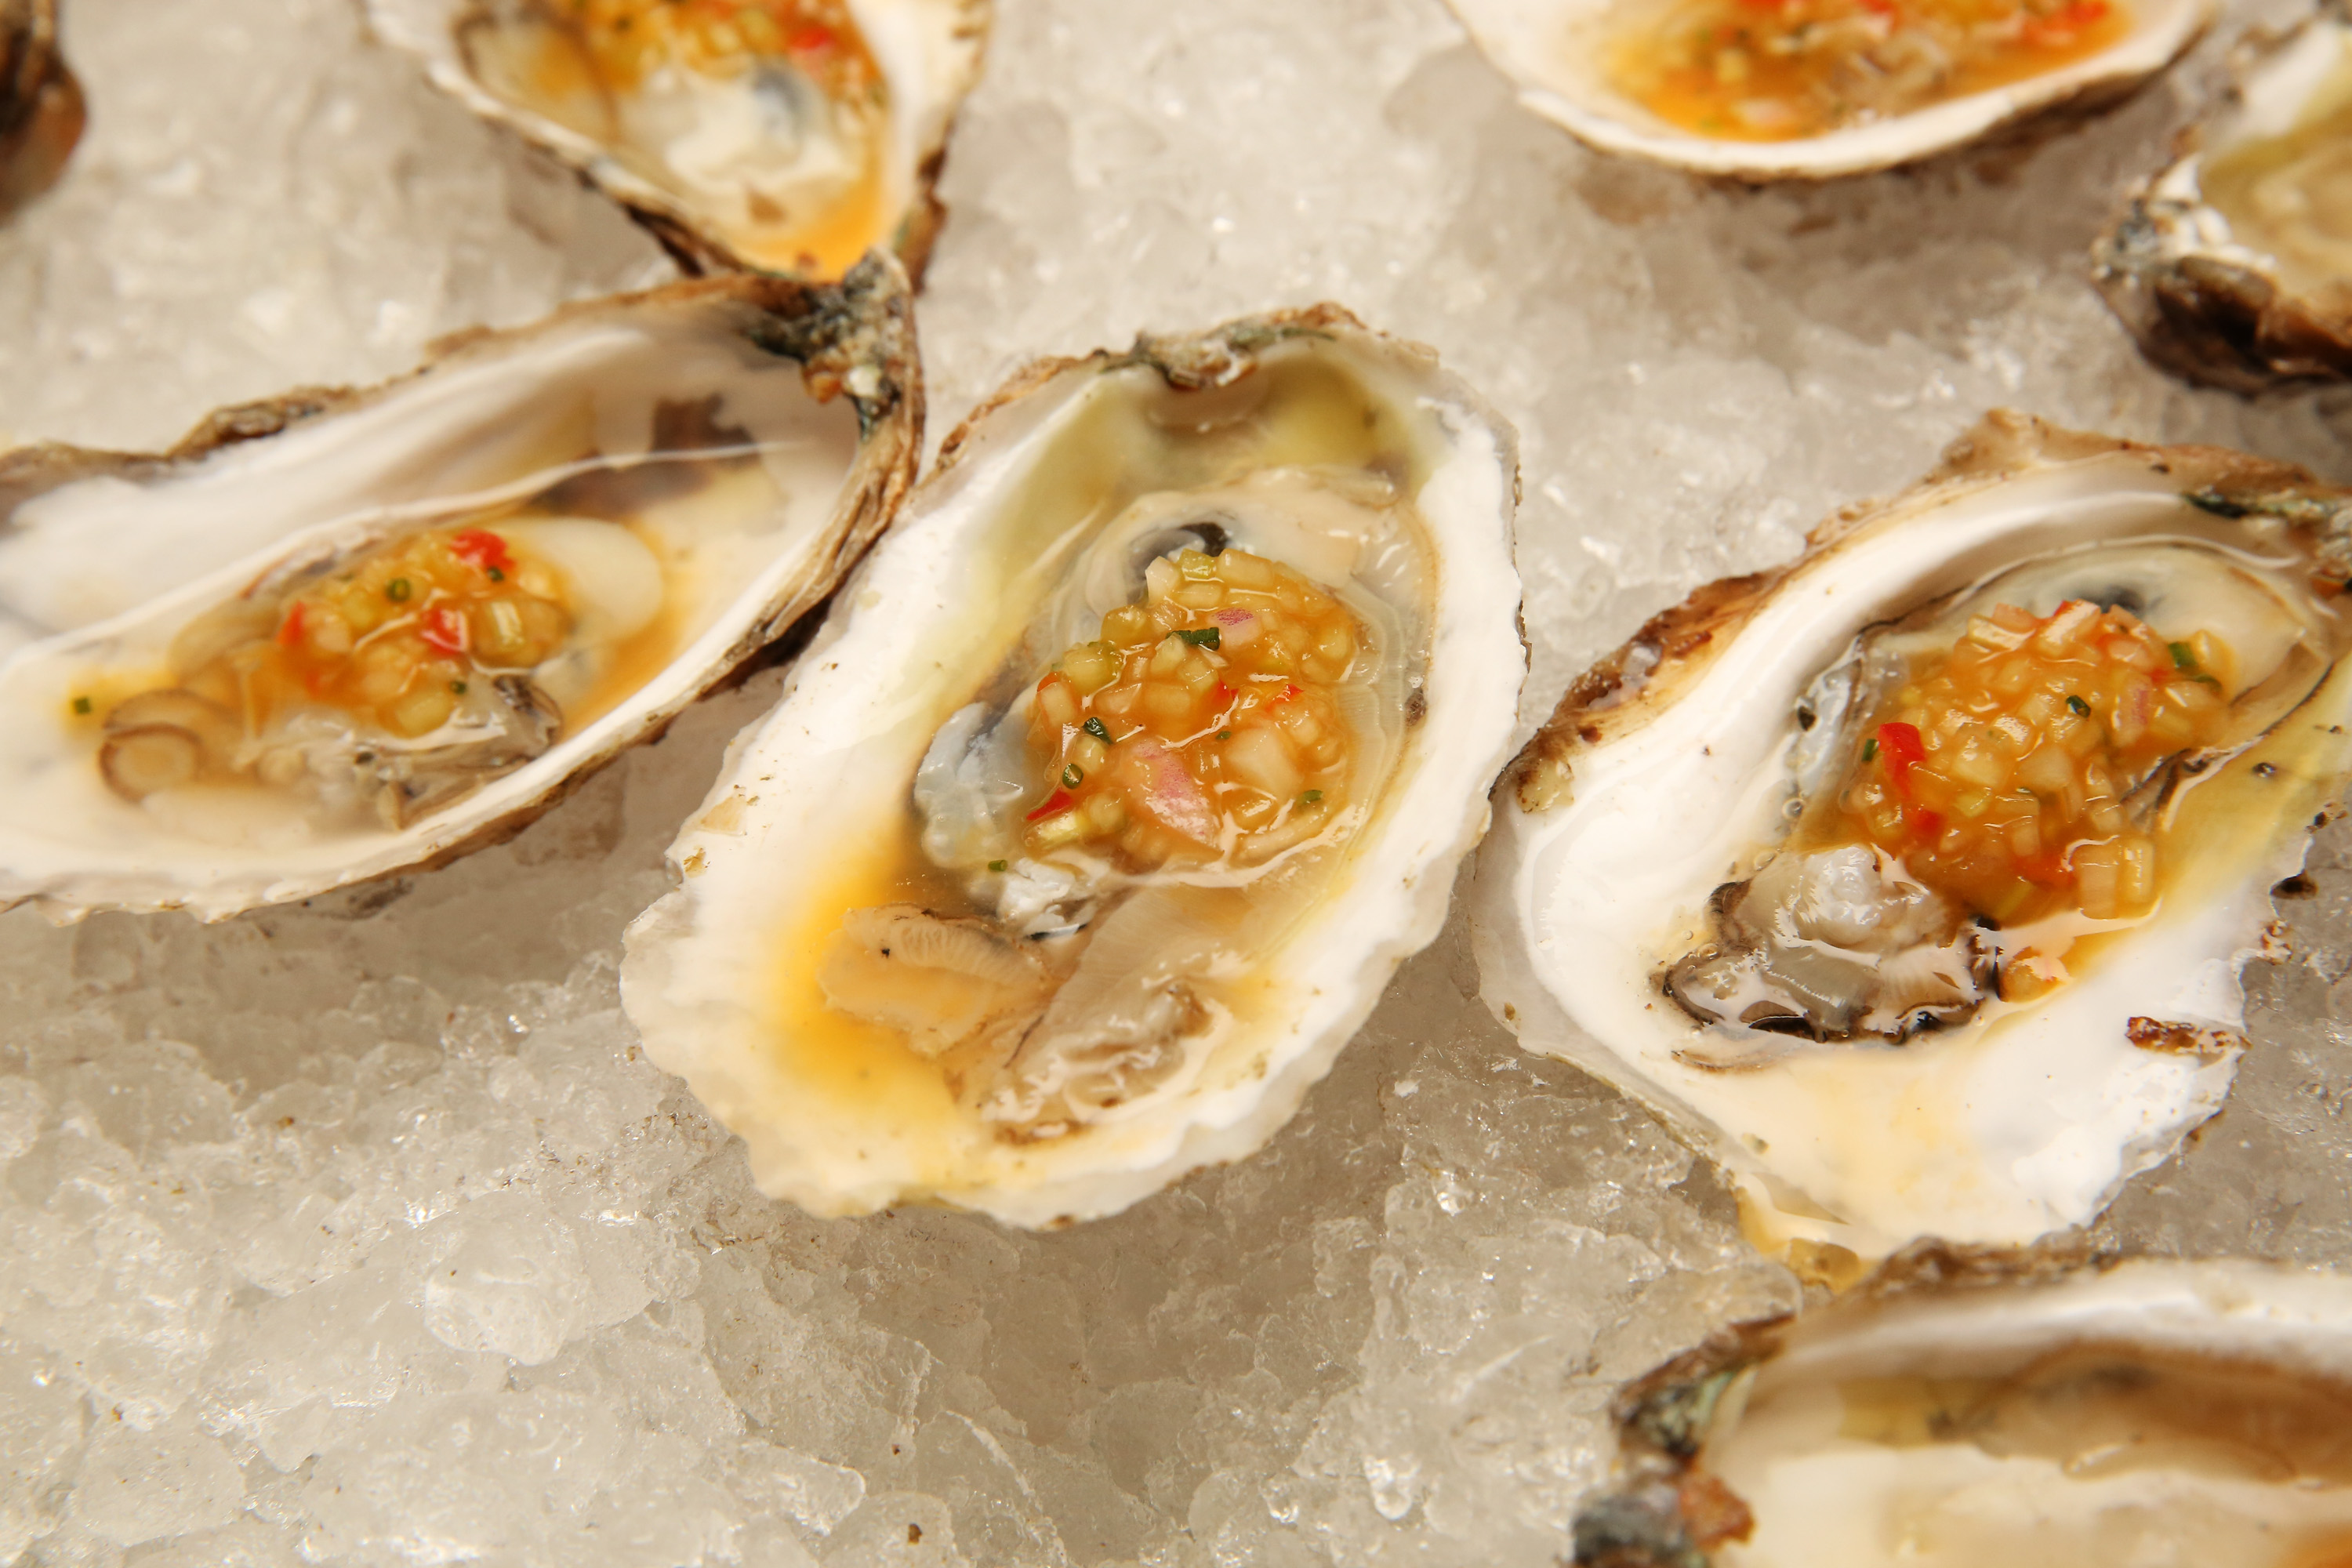 We've Found Miami's Top 10 Spots for Oysters